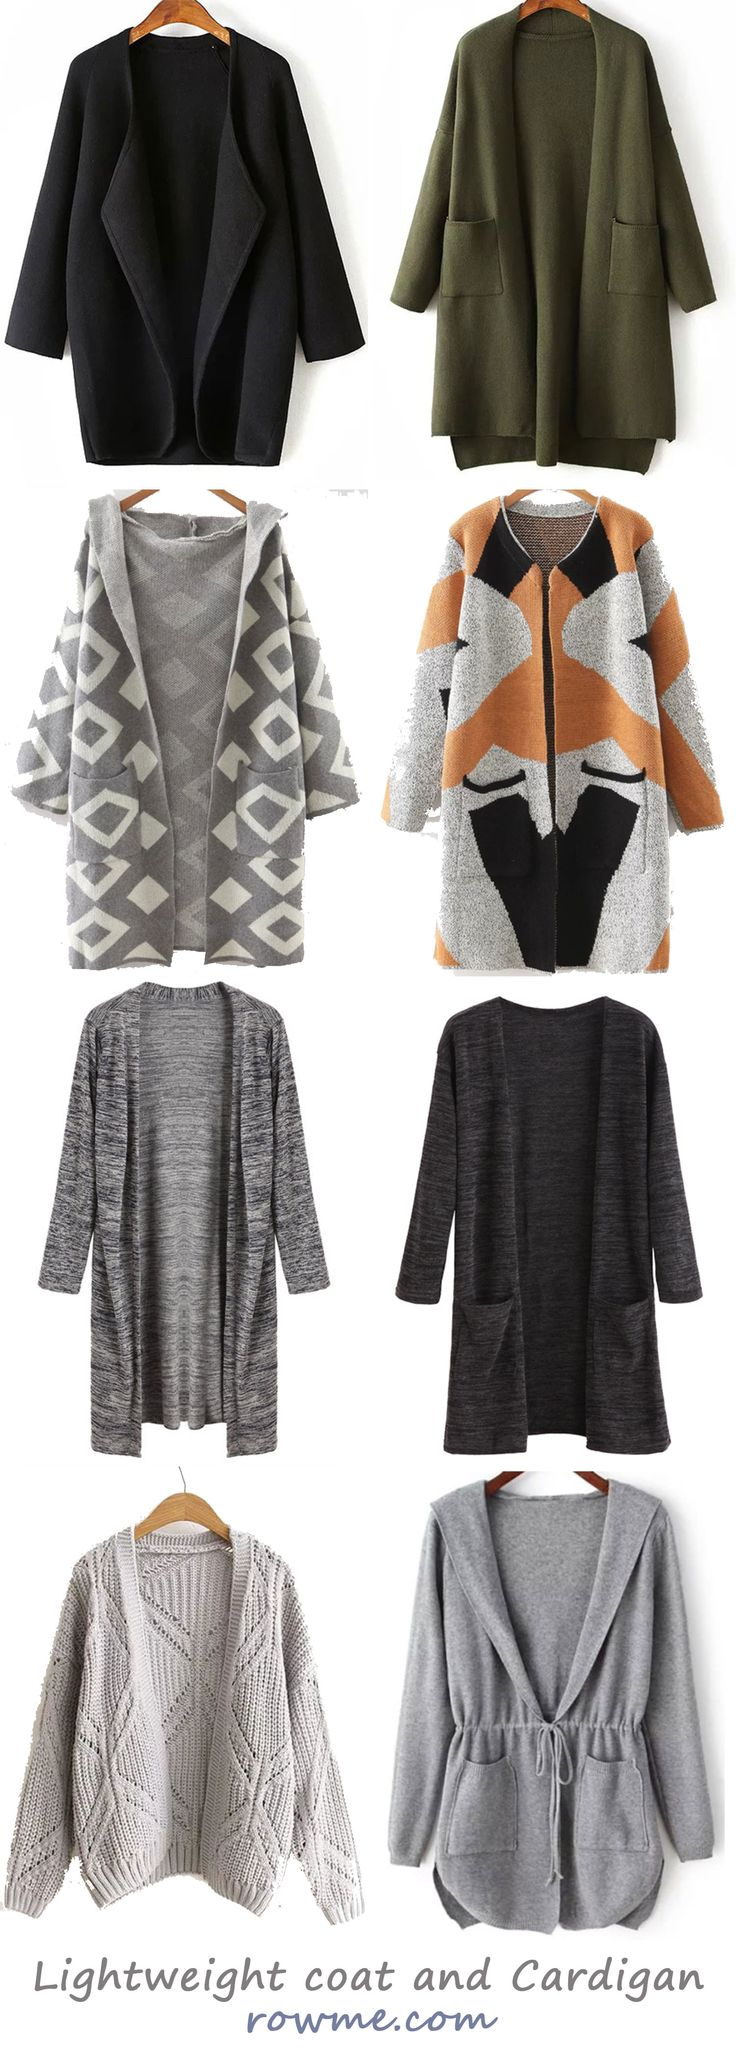 Chic fall lightweight coat and cardigan - rowme.com